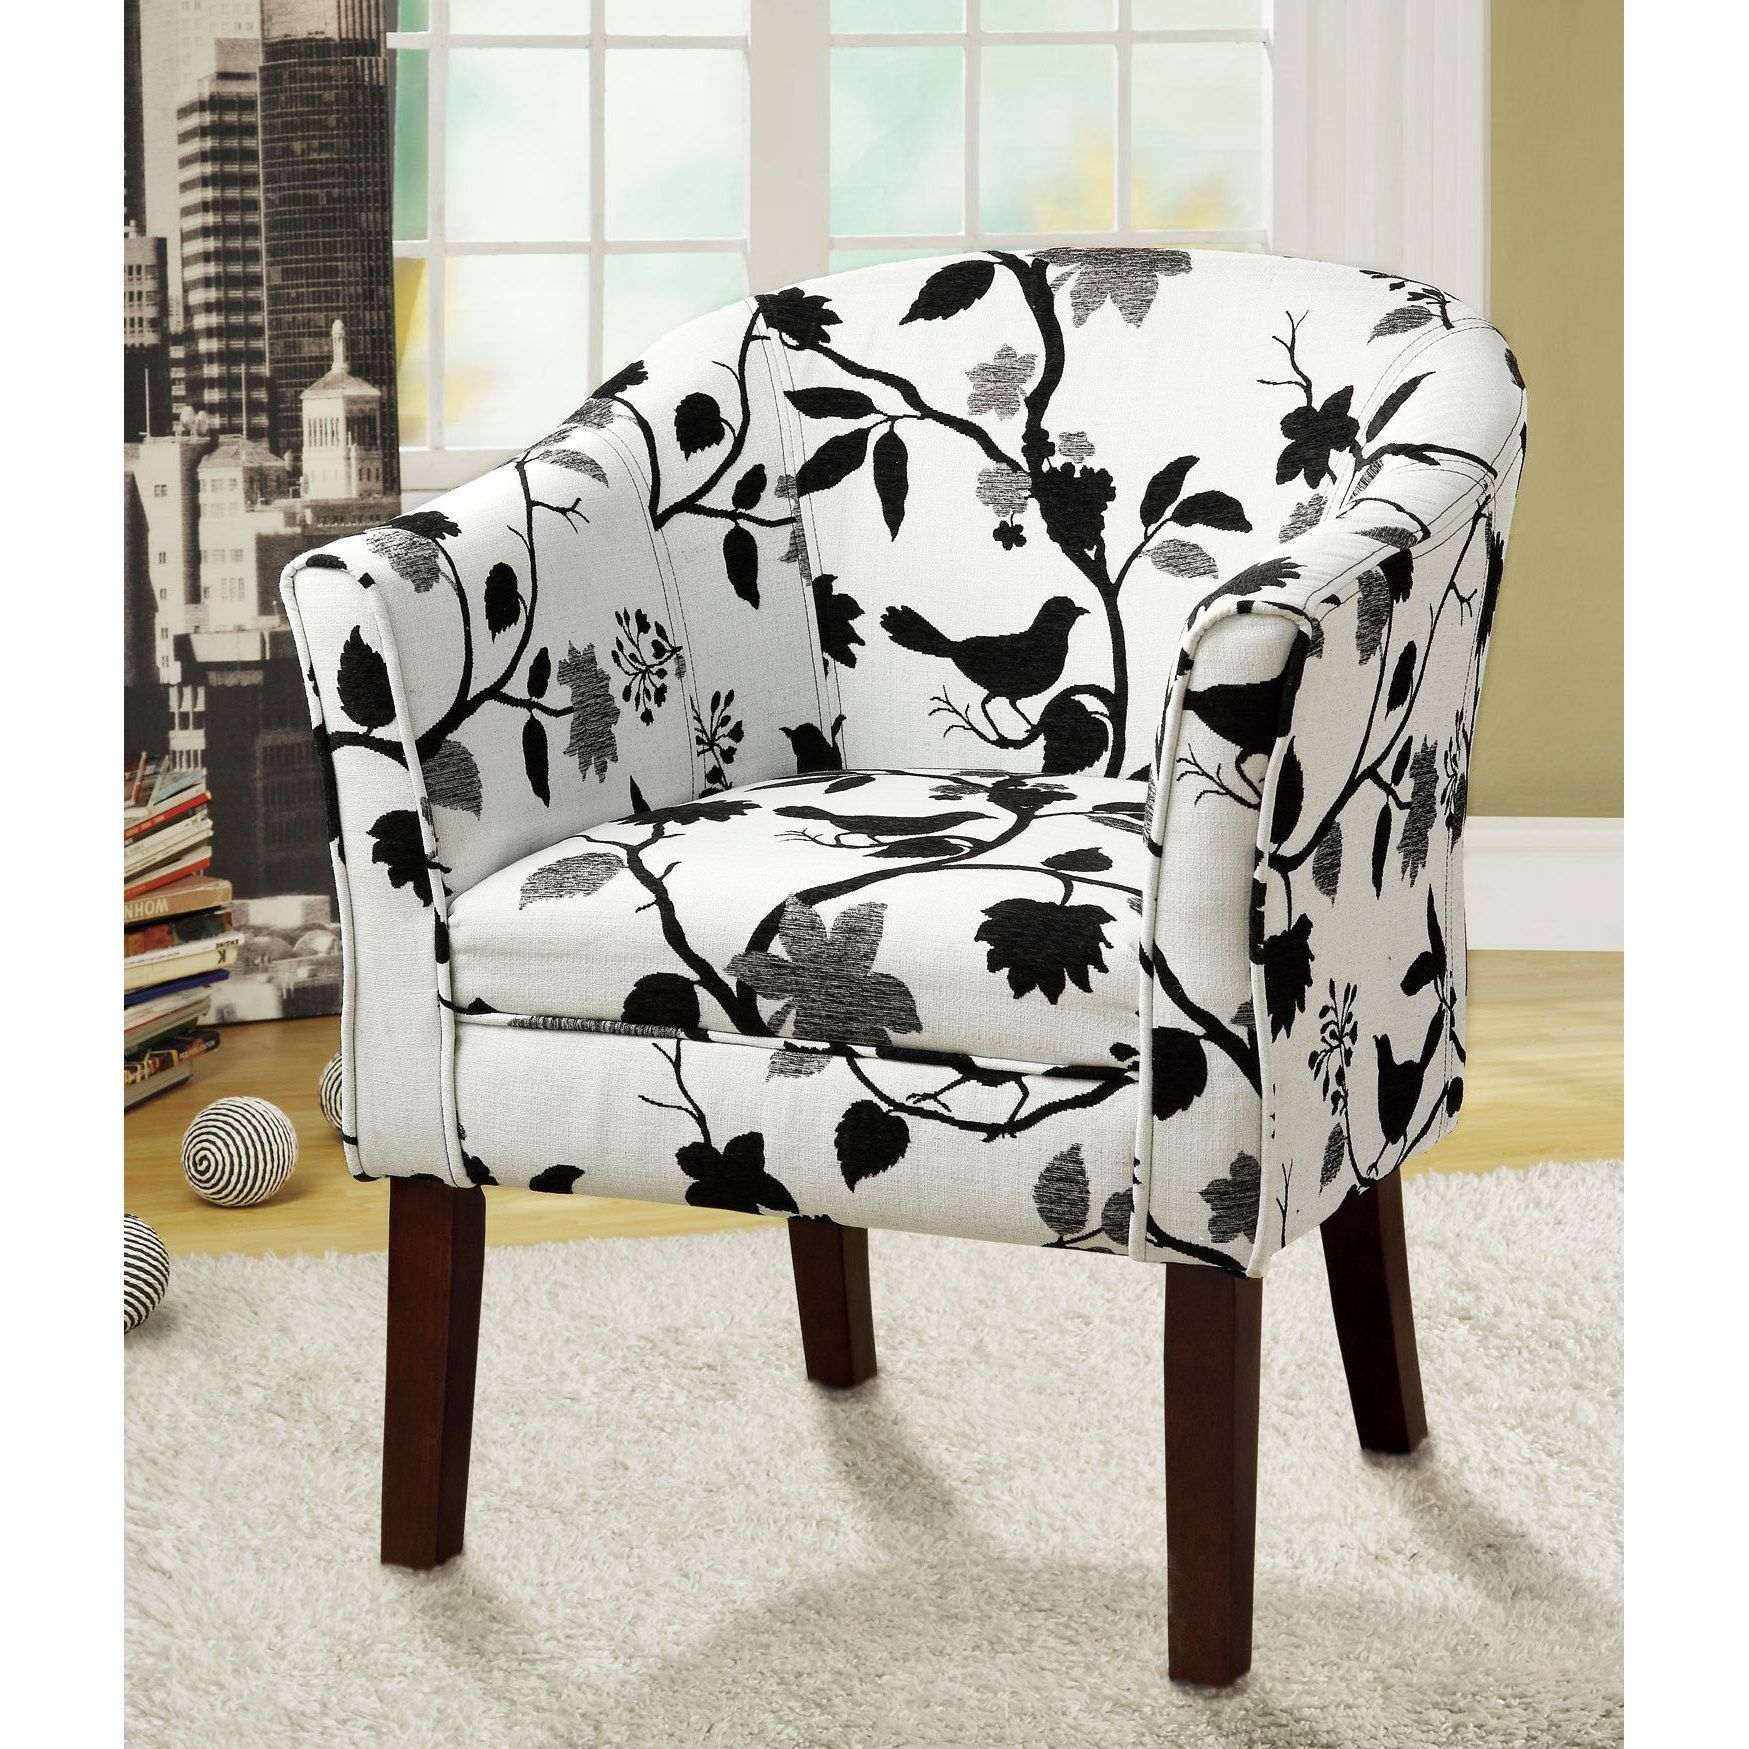 Covered in a playful bird and branch fabric this accent chair is